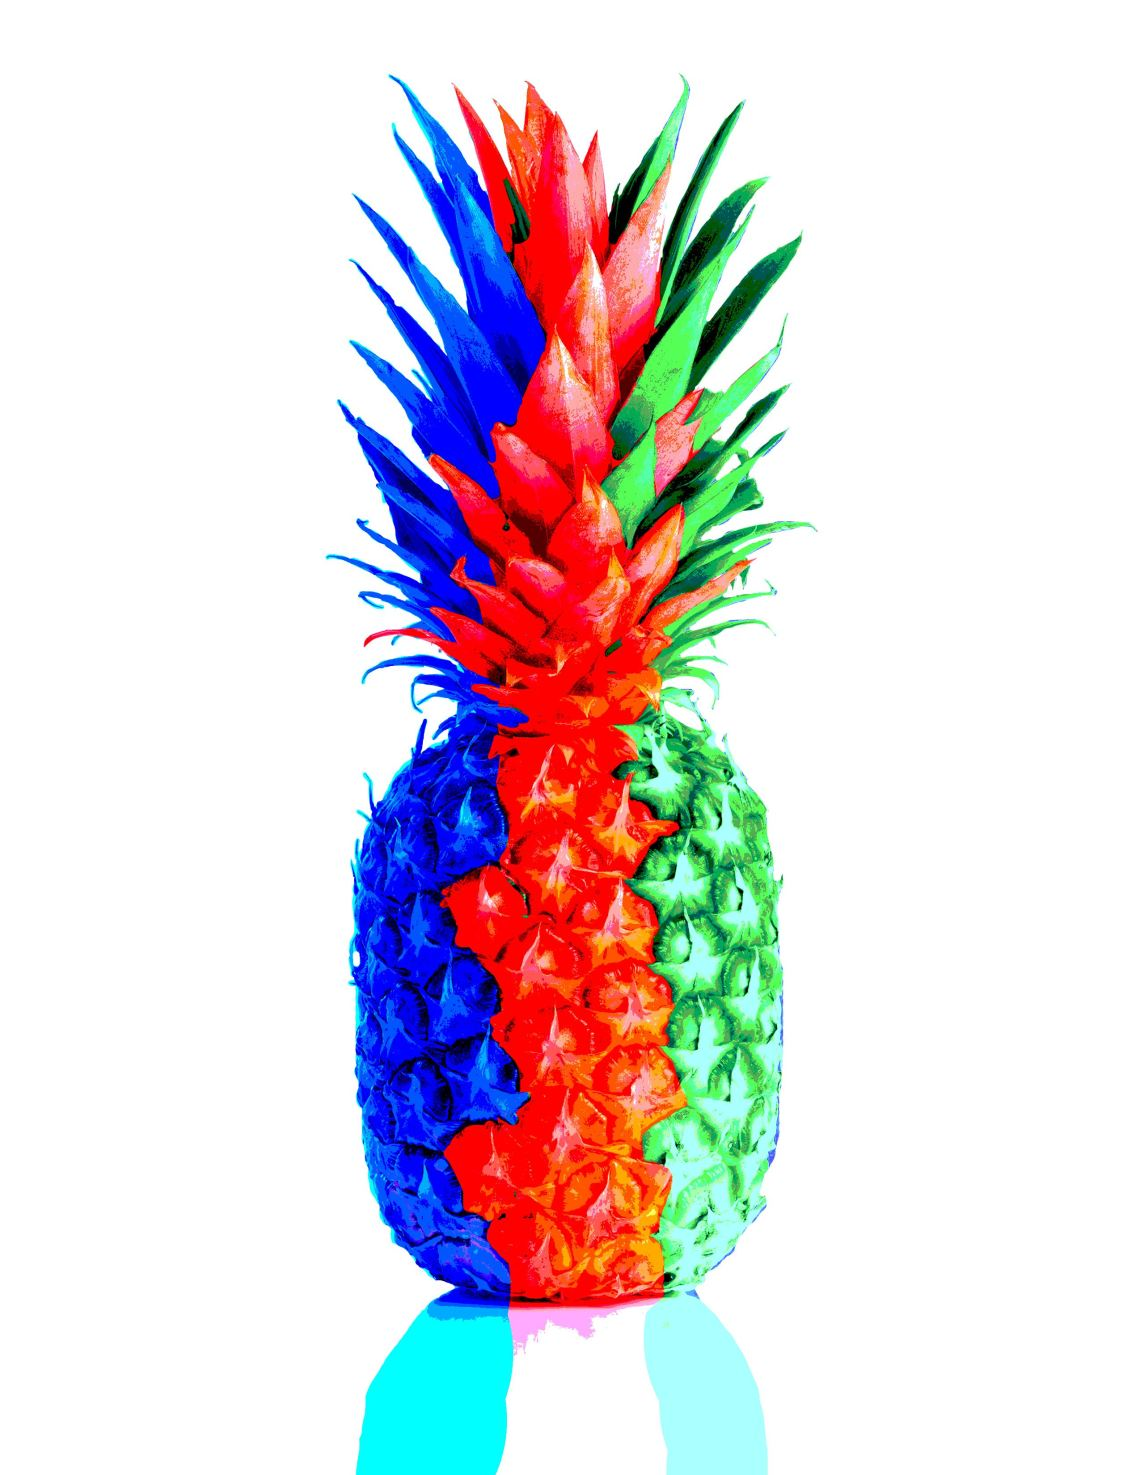 red,green and blue pineapple with the use of photoshop.